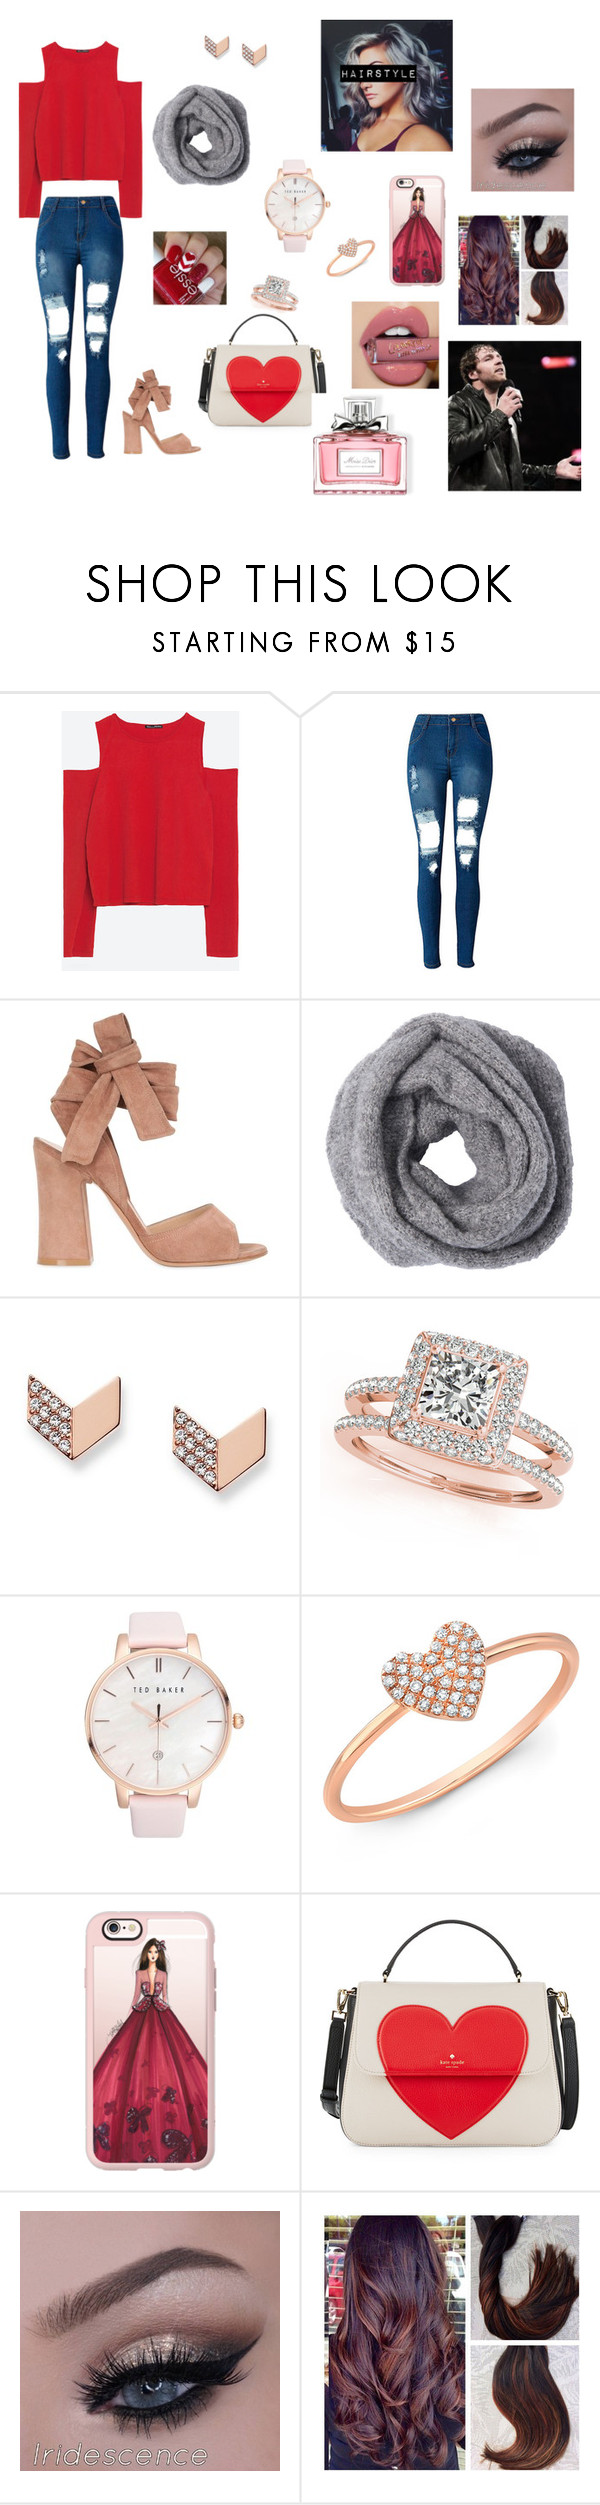 """Obsession #18"" by annaconley on Polyvore featuring Zara, WithChic, Gianvito Rossi, FOSSIL, Allurez, Ted Baker, Anne Sisteron, Casetify, Kate Spade and Christian Dior"